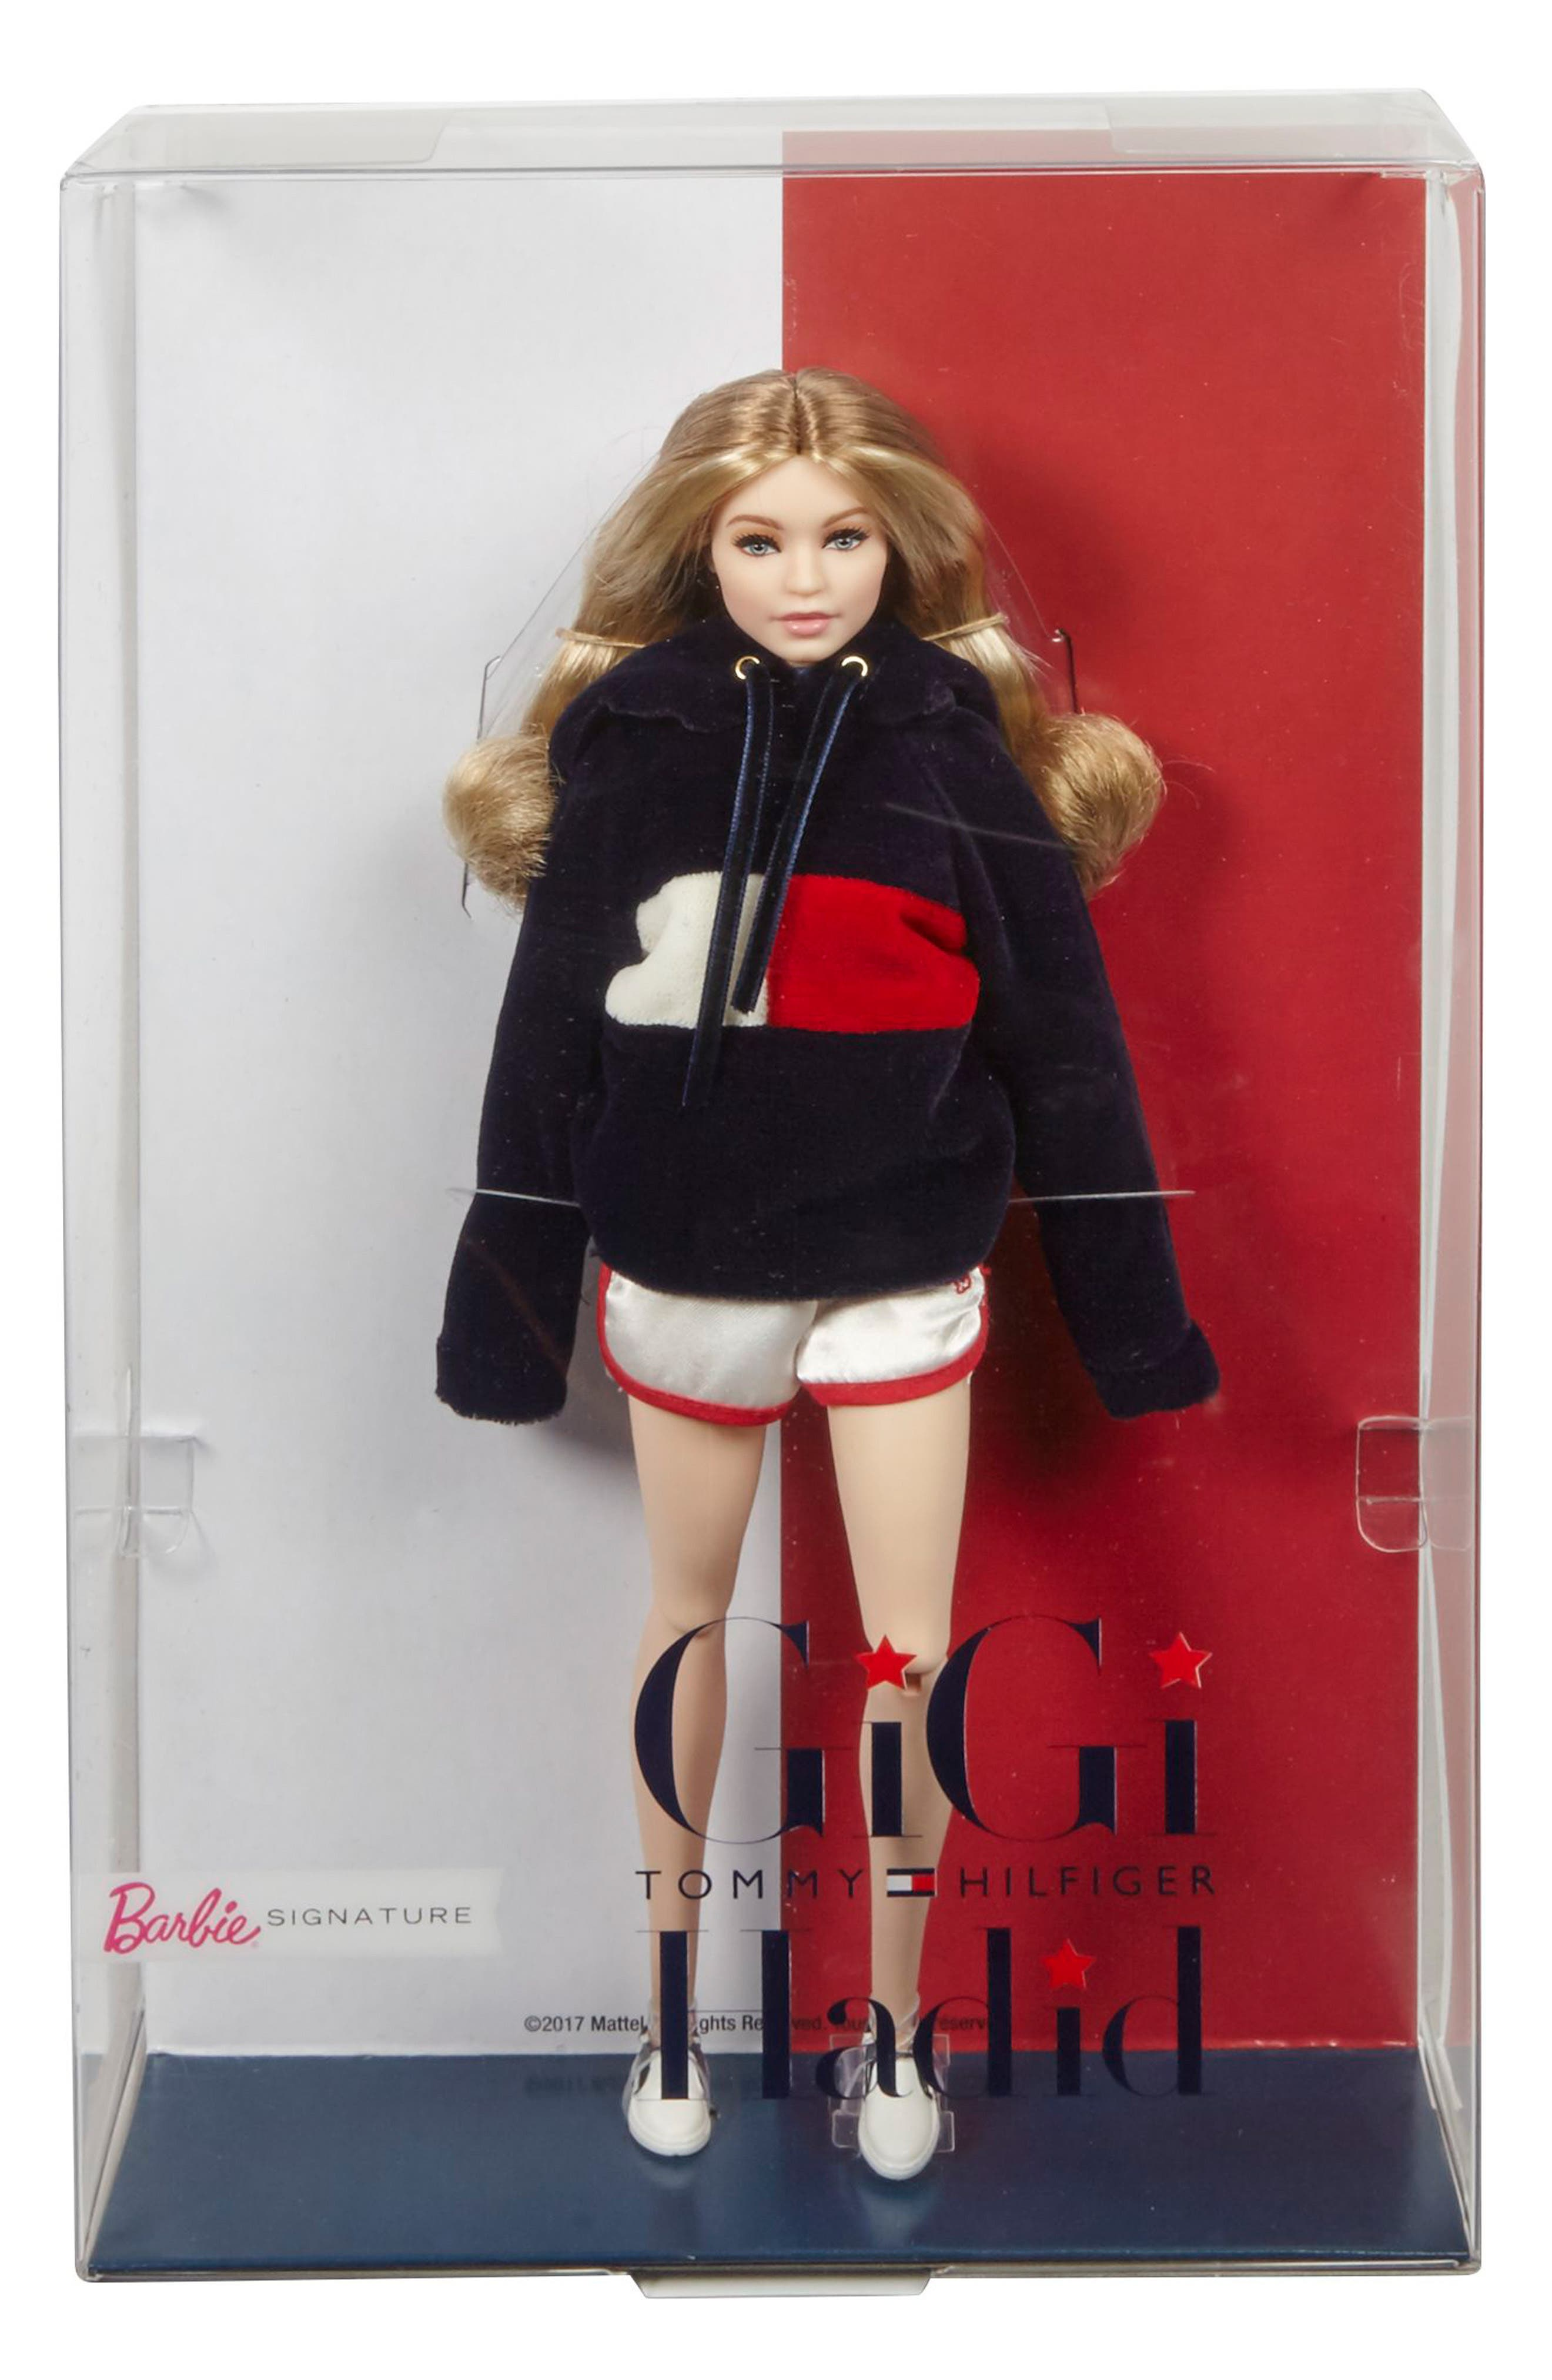 Barbie<sup>®</sup> Signature Tommy Hilfiger x Gigi Hadid Doll,                         Main,                         color, Multi